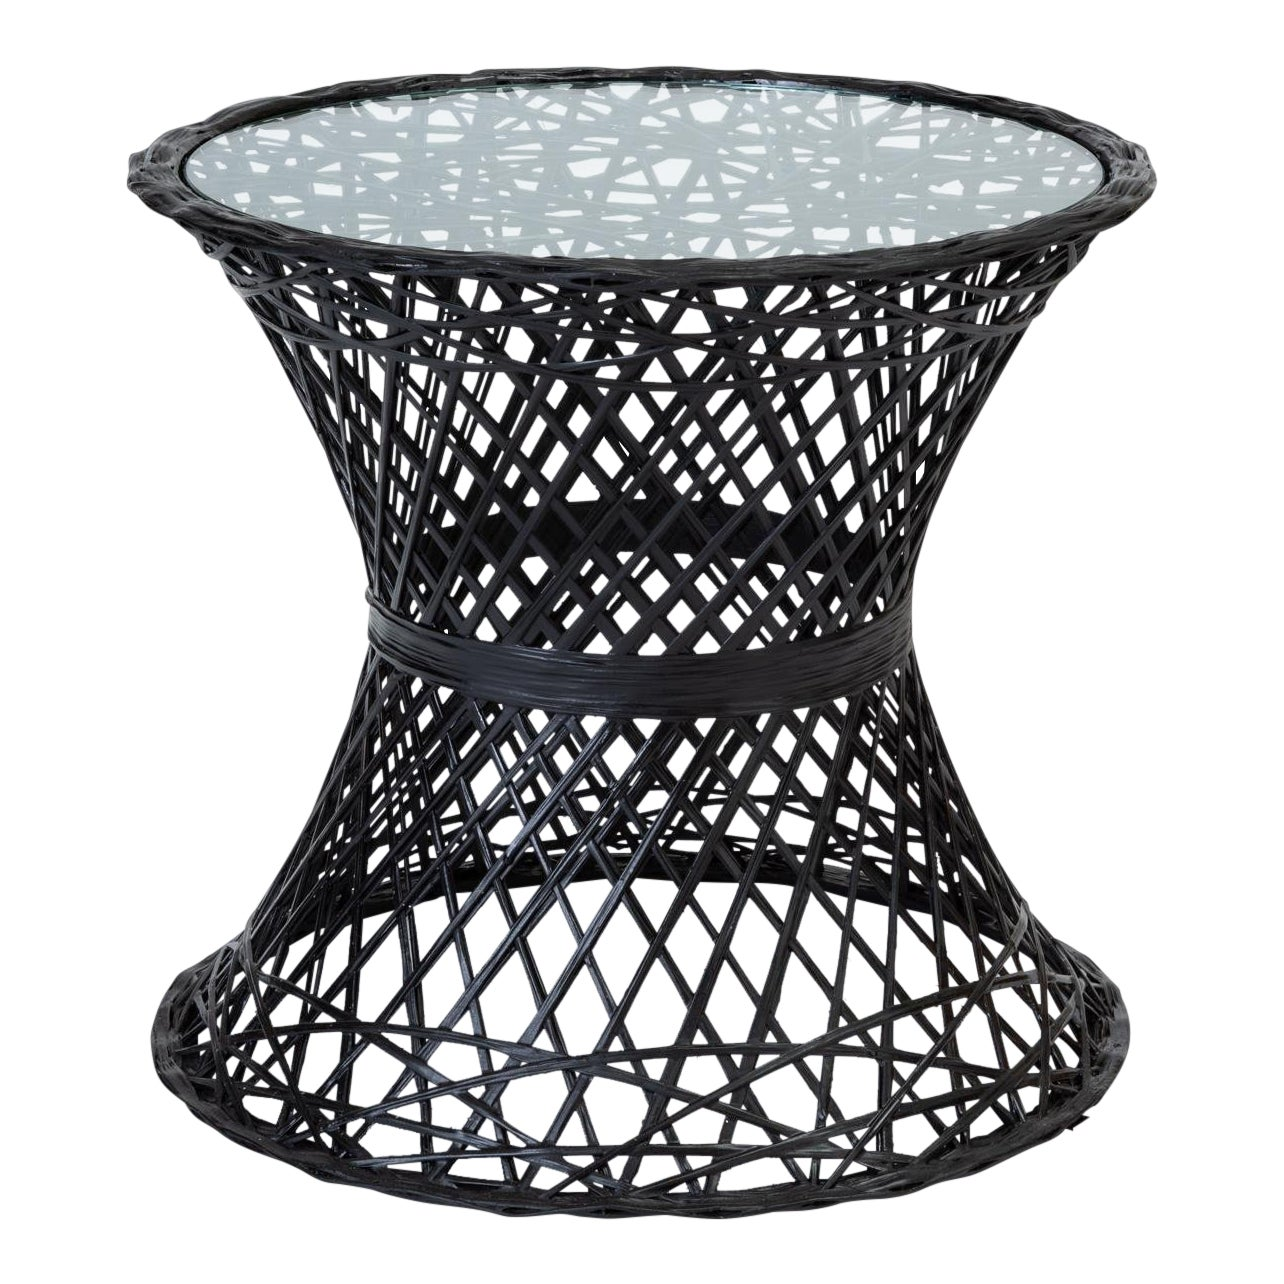 Single Spun Fiberglass Patio Side Table By Woodard Furniture